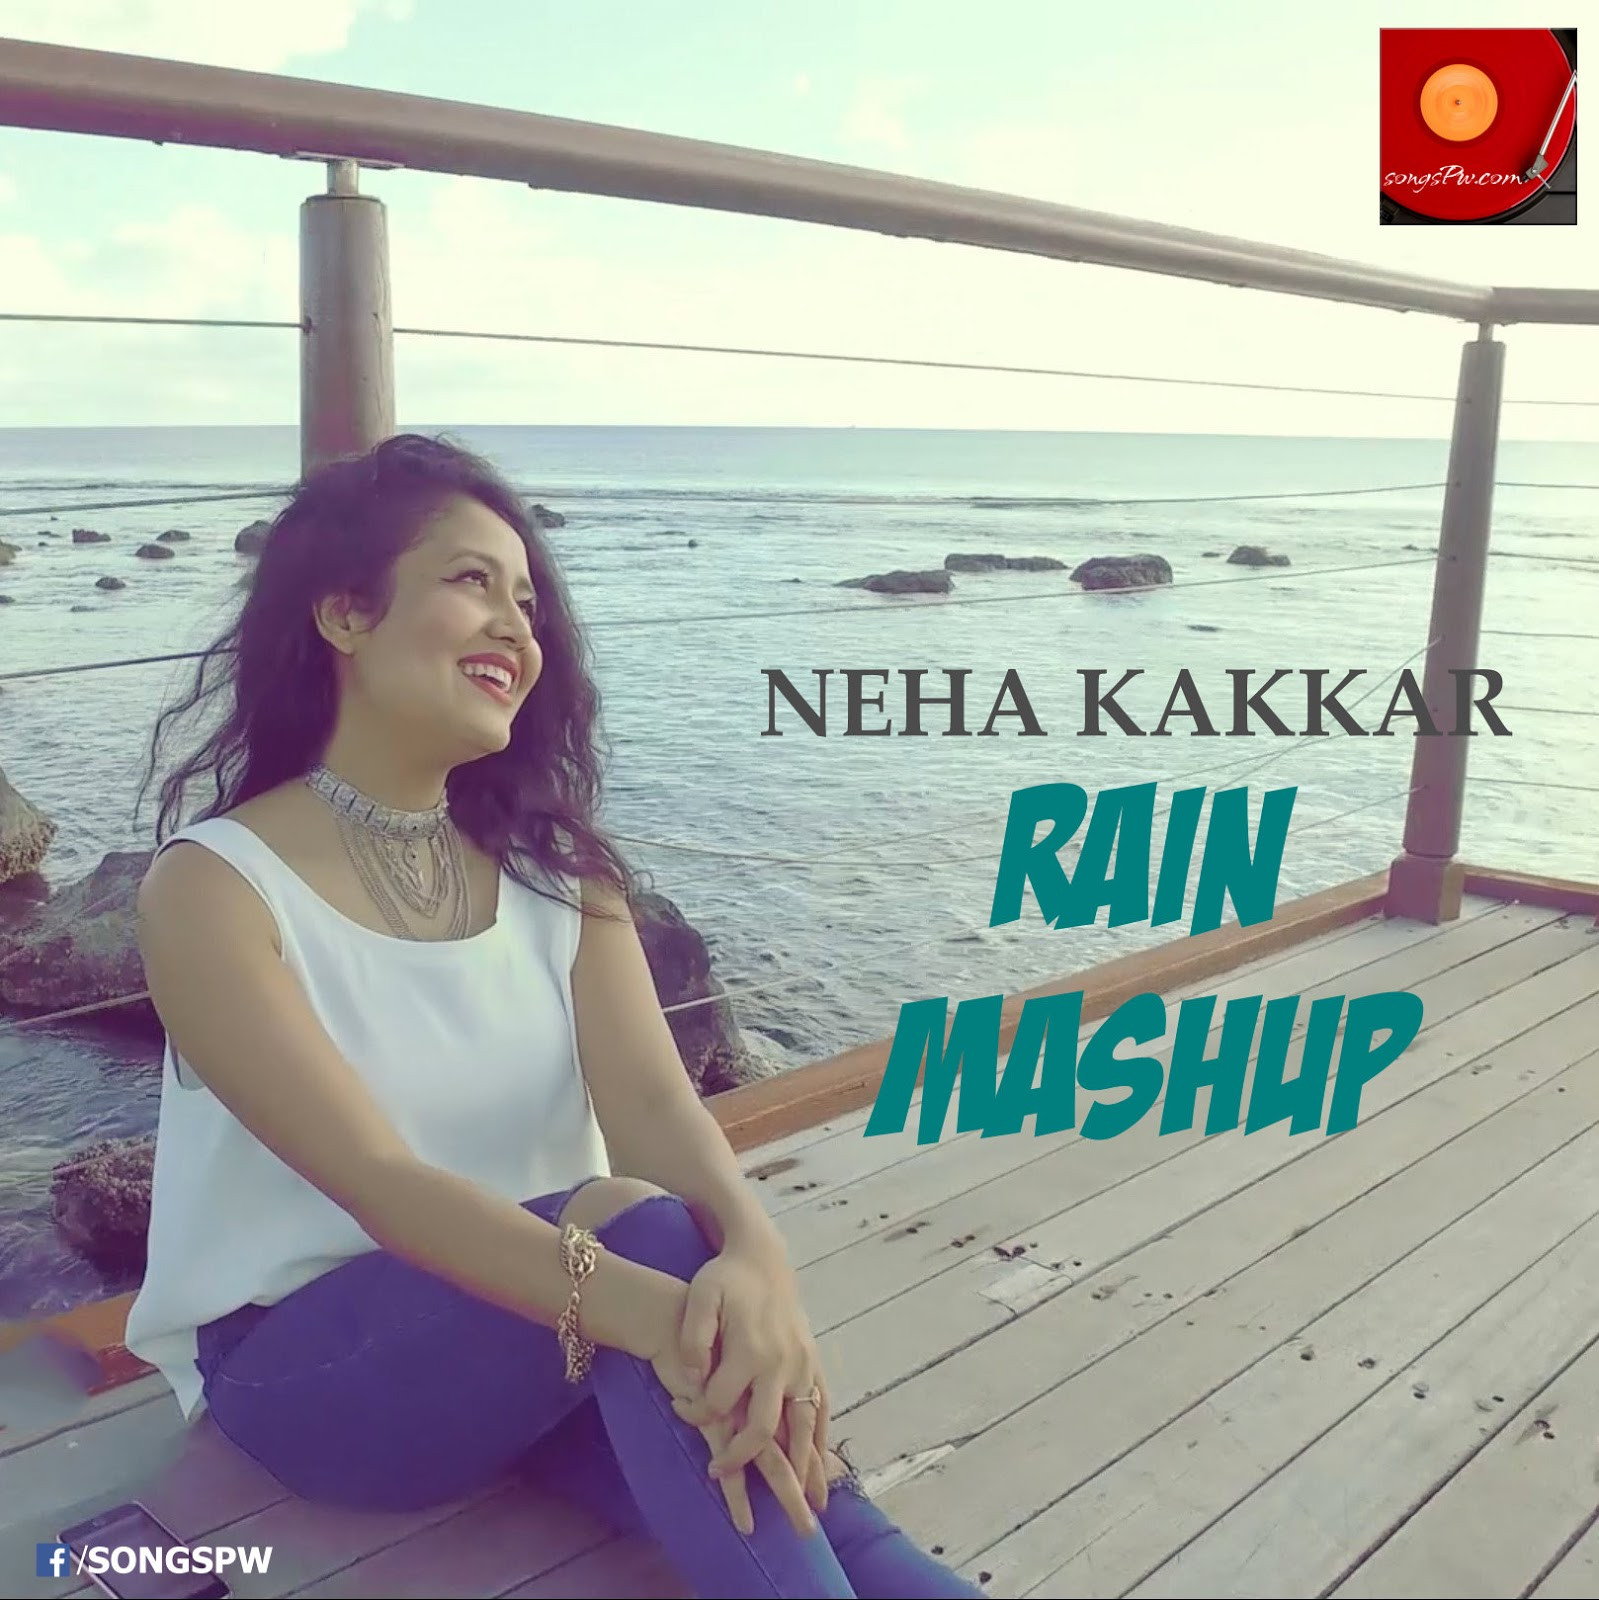 Neha Kakkar Thera Ghata Downlpad: HD SONGS BD: Tip Tip Barsa Pani-Neha Kakkar New Songs 2016